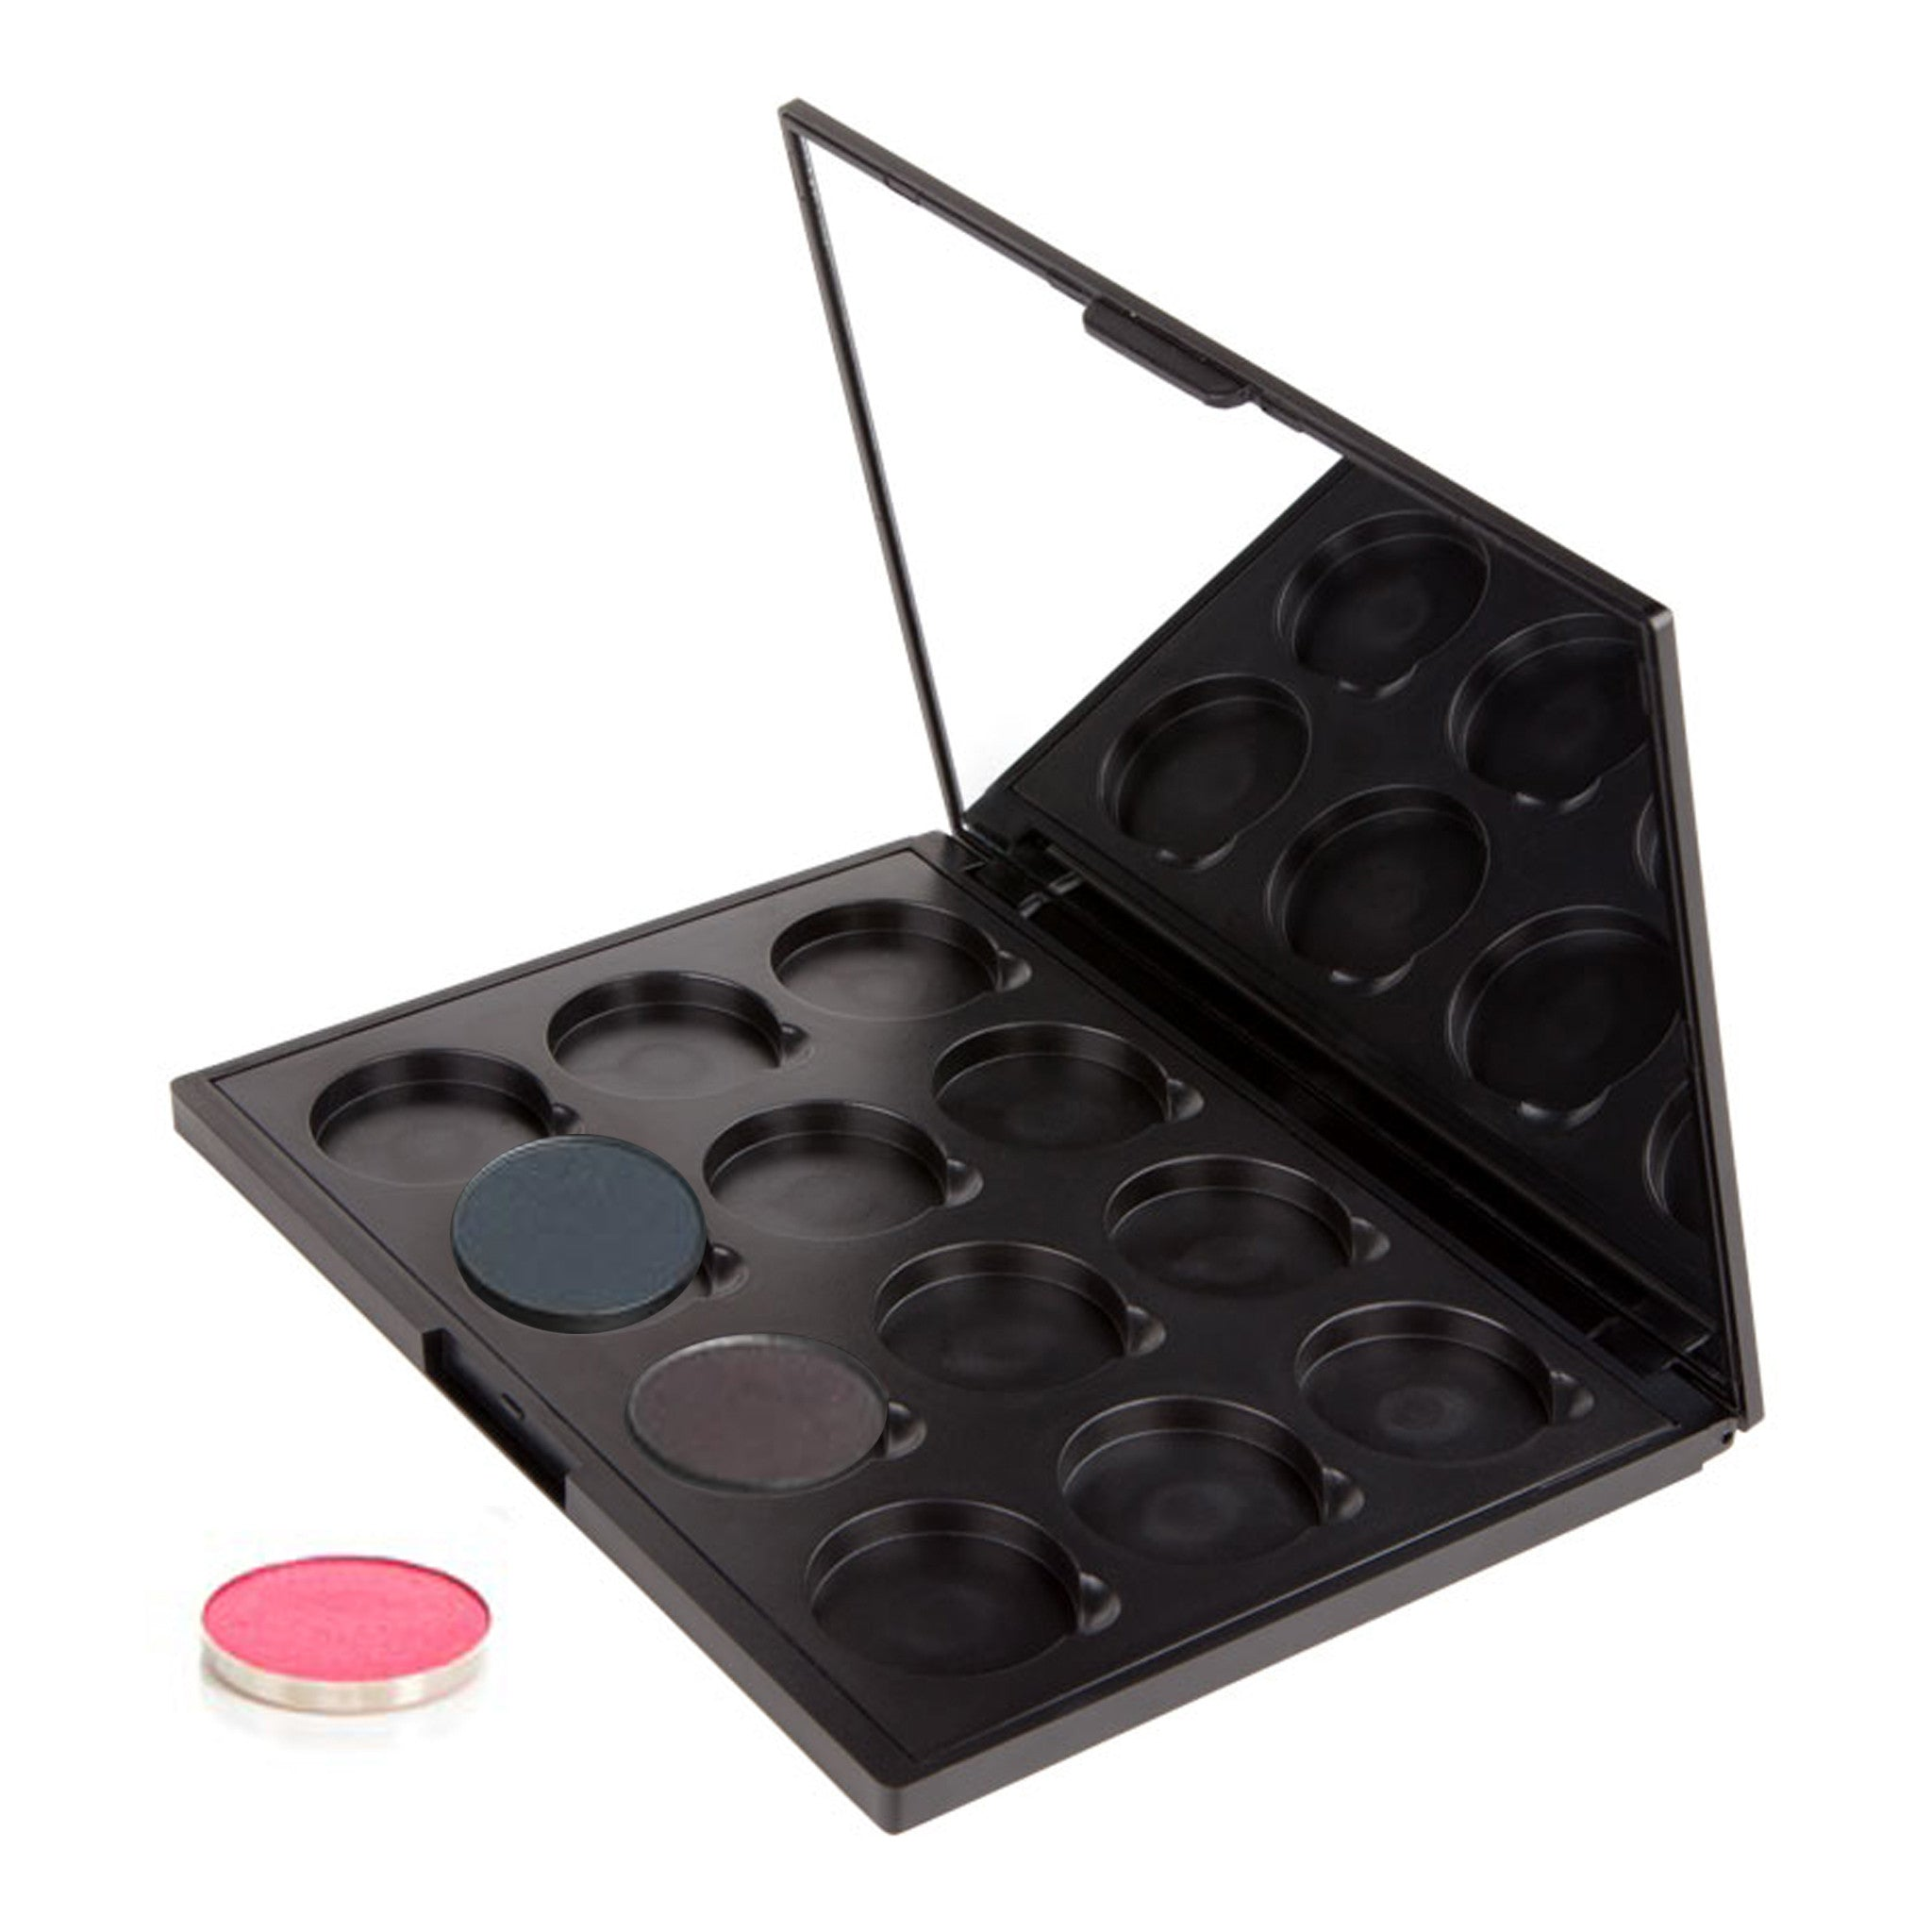 Makeup -Empty Palette - Empty Palette: 12 Shadows with Mirror With Hot Pots By Coastal Scents